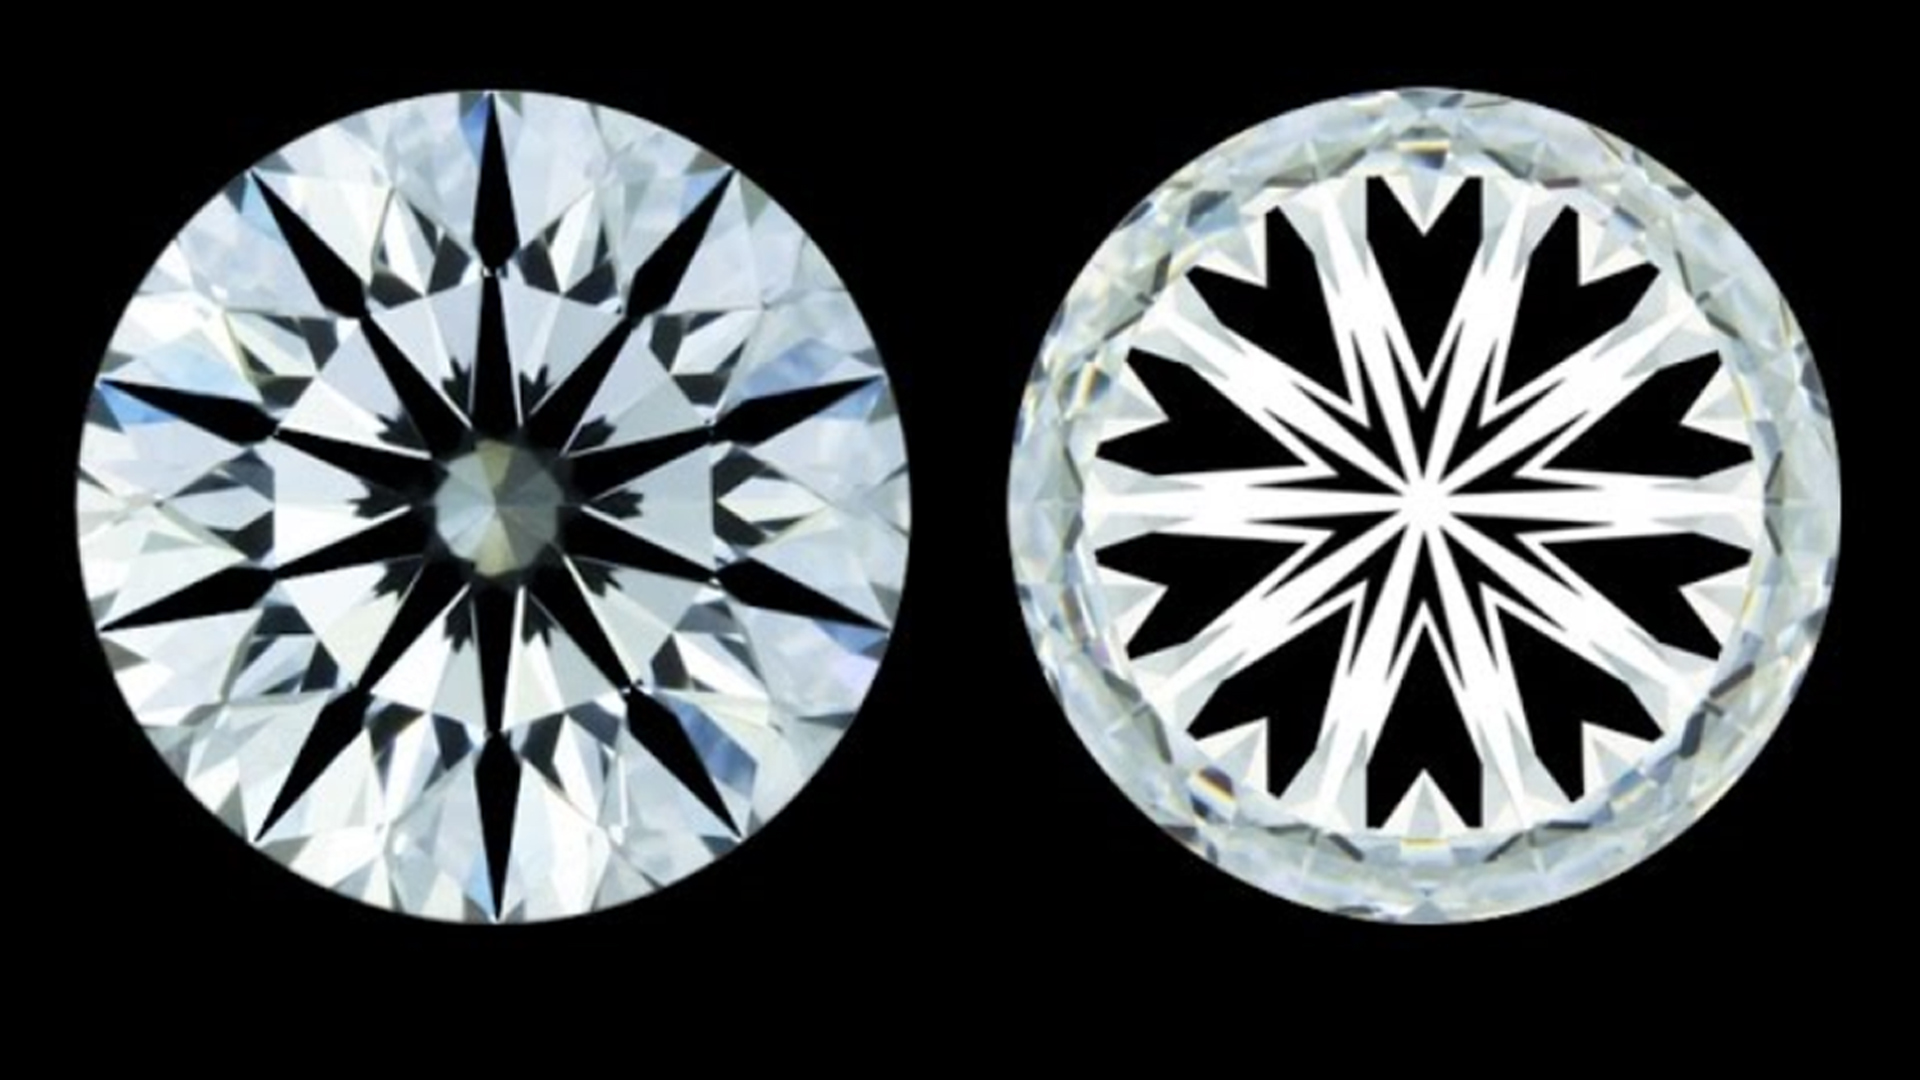 JannPaul: Comparing a Common Round Diamond with Signature Super Ideal and Solasfera